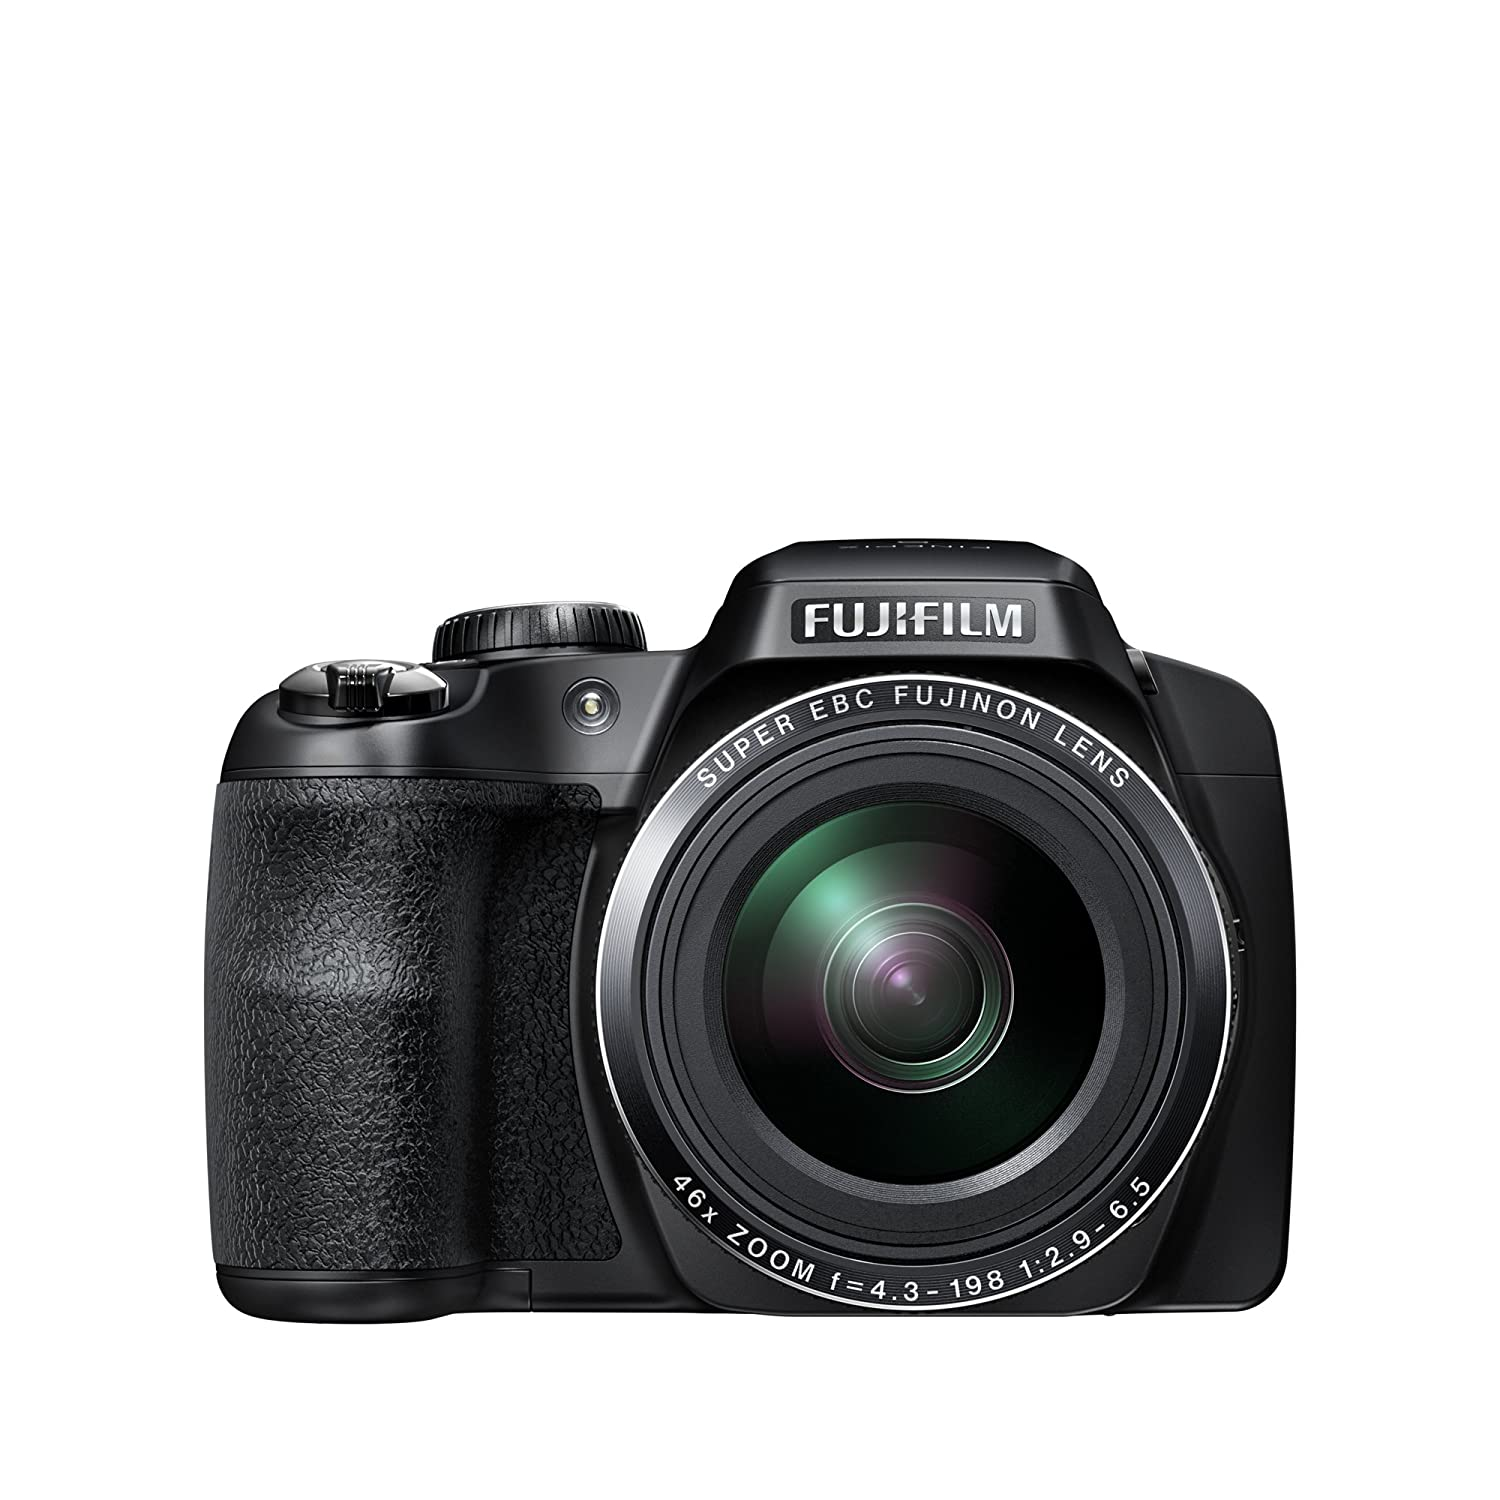 Amazon.com : Fujifilm FinePix 16MP Digital Camera with 46x Optical Zoom  (S8500) : Camera & Photo